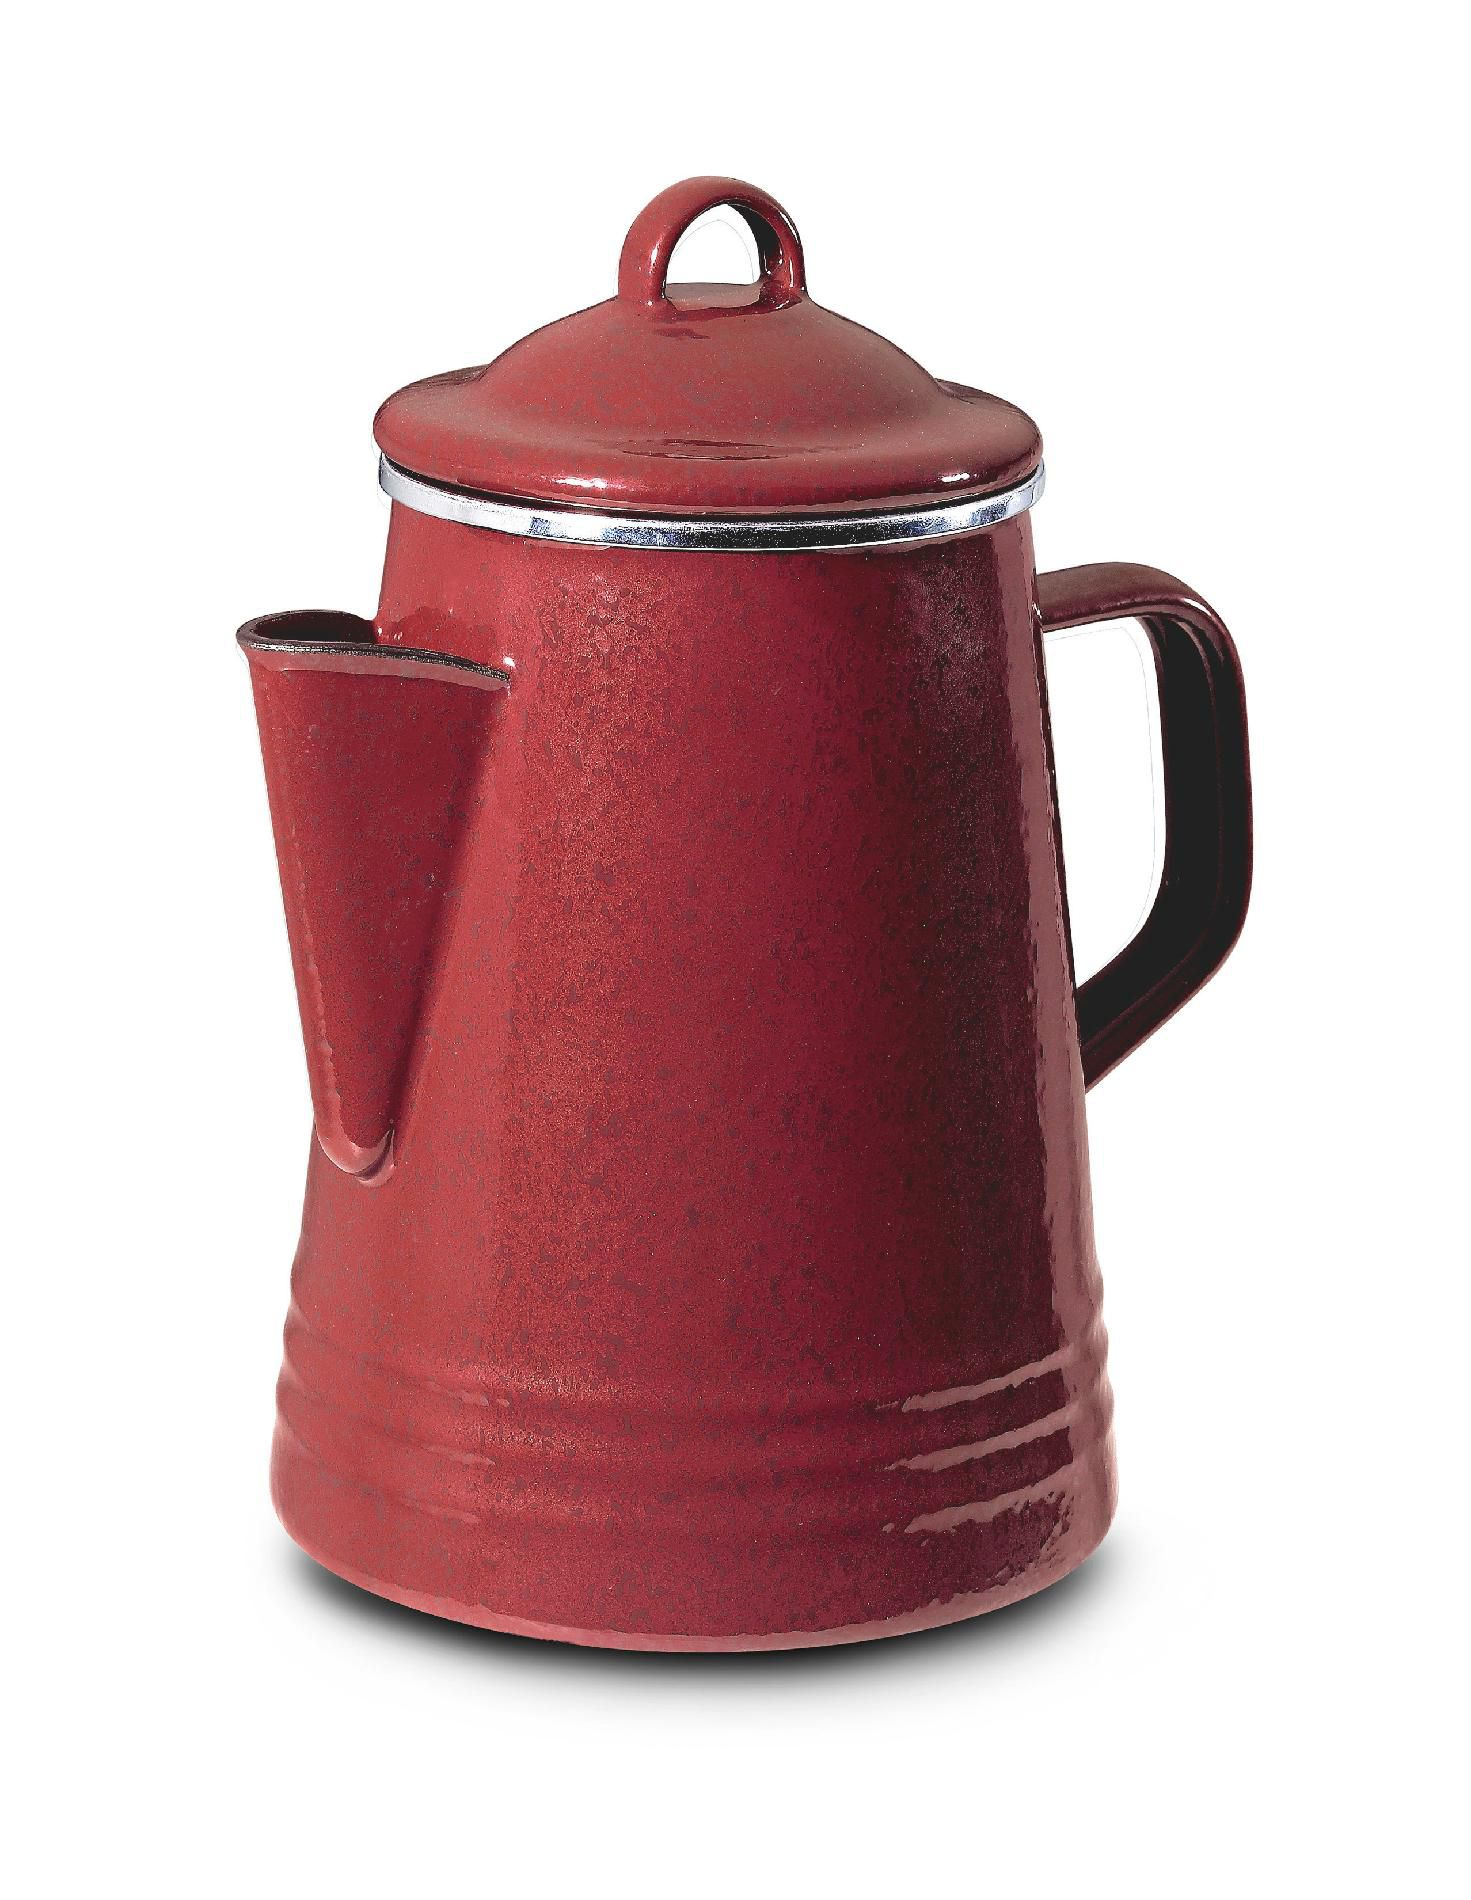 8-Cup Stovetop Percolator, Red